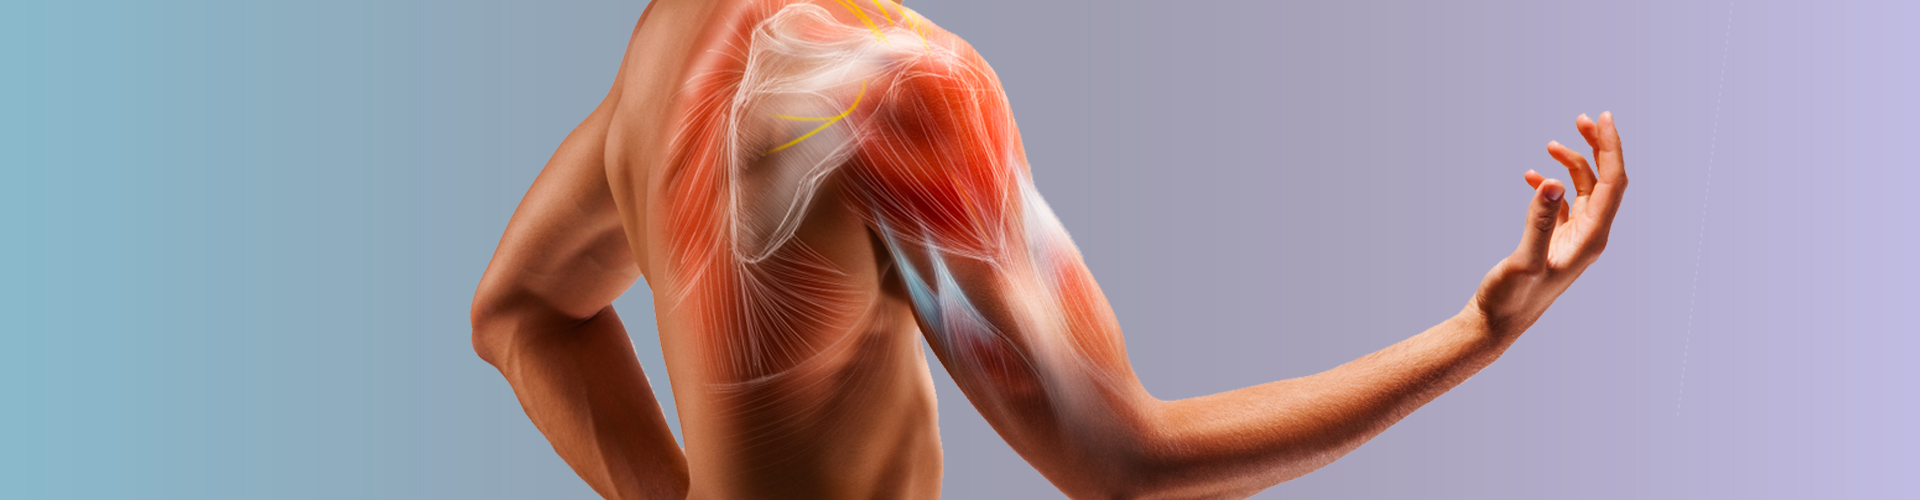 Is chronic shoulder pain limiting your range of motion and causing daily pain? Pain doctors reveal new shoulder pain treatments in 2019 designed to relieve soreness and restore mobility.